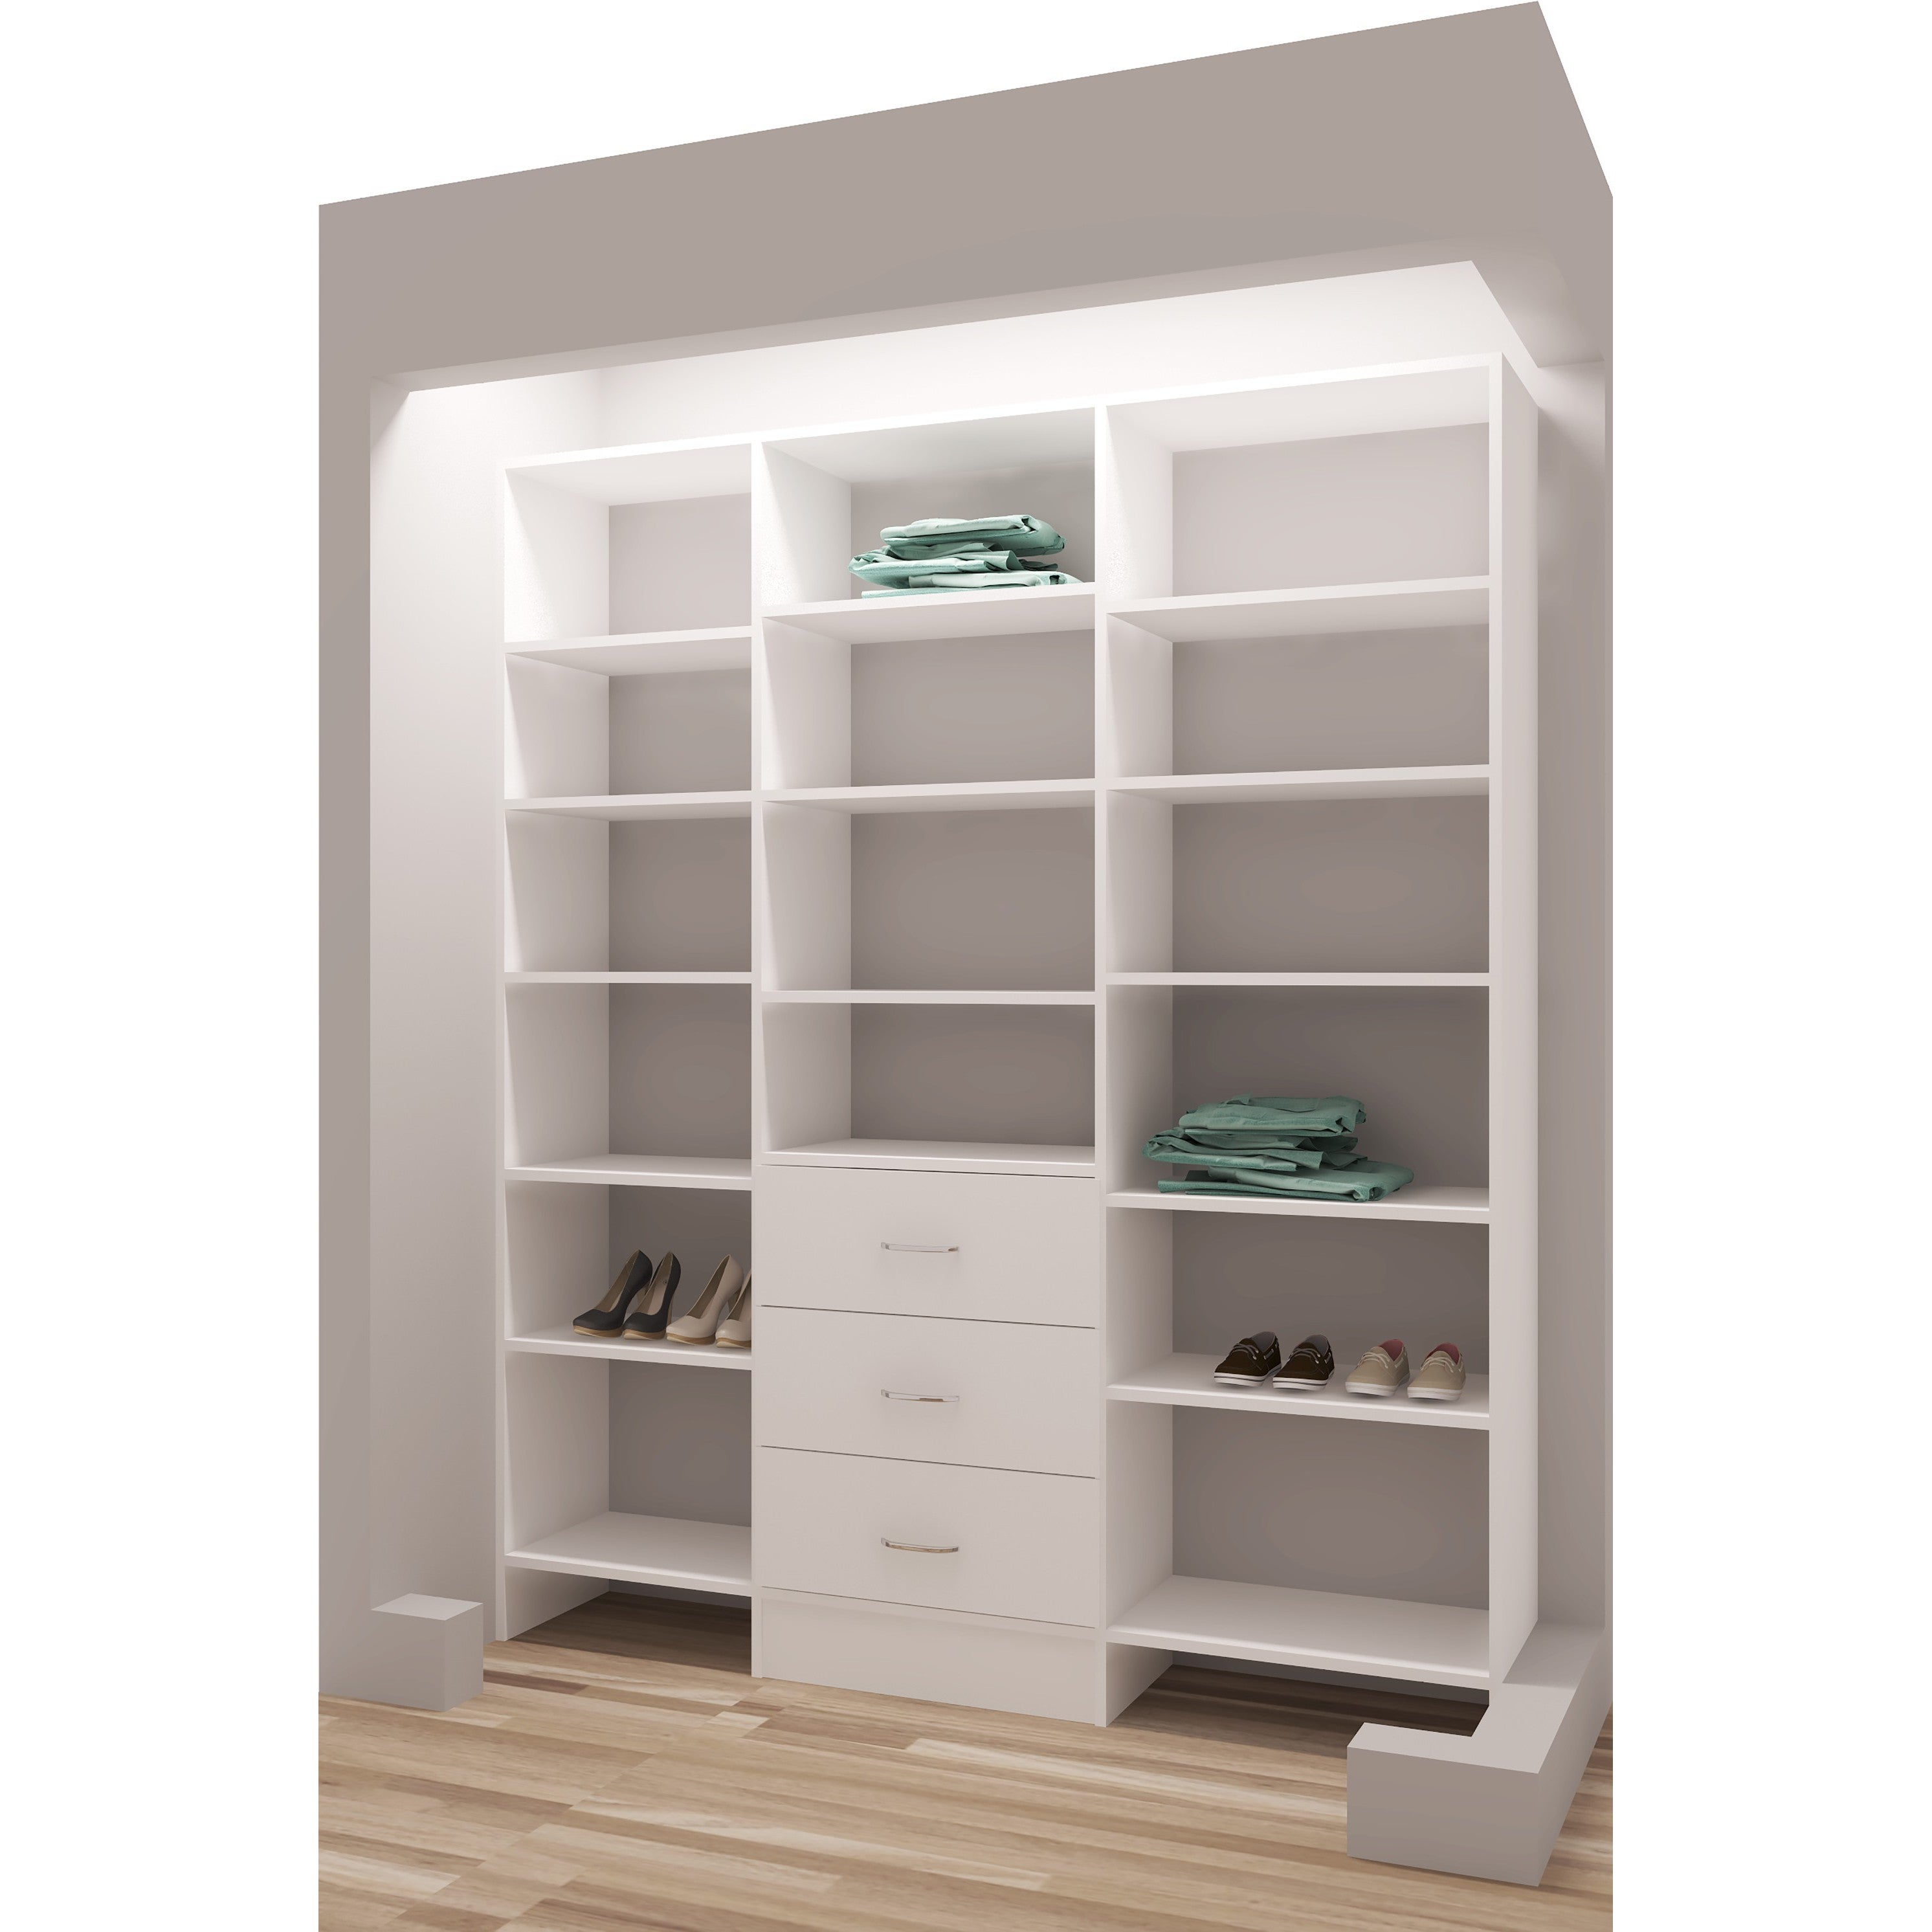 effective wardrobe and oak ideas additional organizers vinyl open effect steel portable design storage with stand alone clothes stainless cabinet shelves hanging exemplary featuring racks inside wooden simply organizer closet surprising freestanding